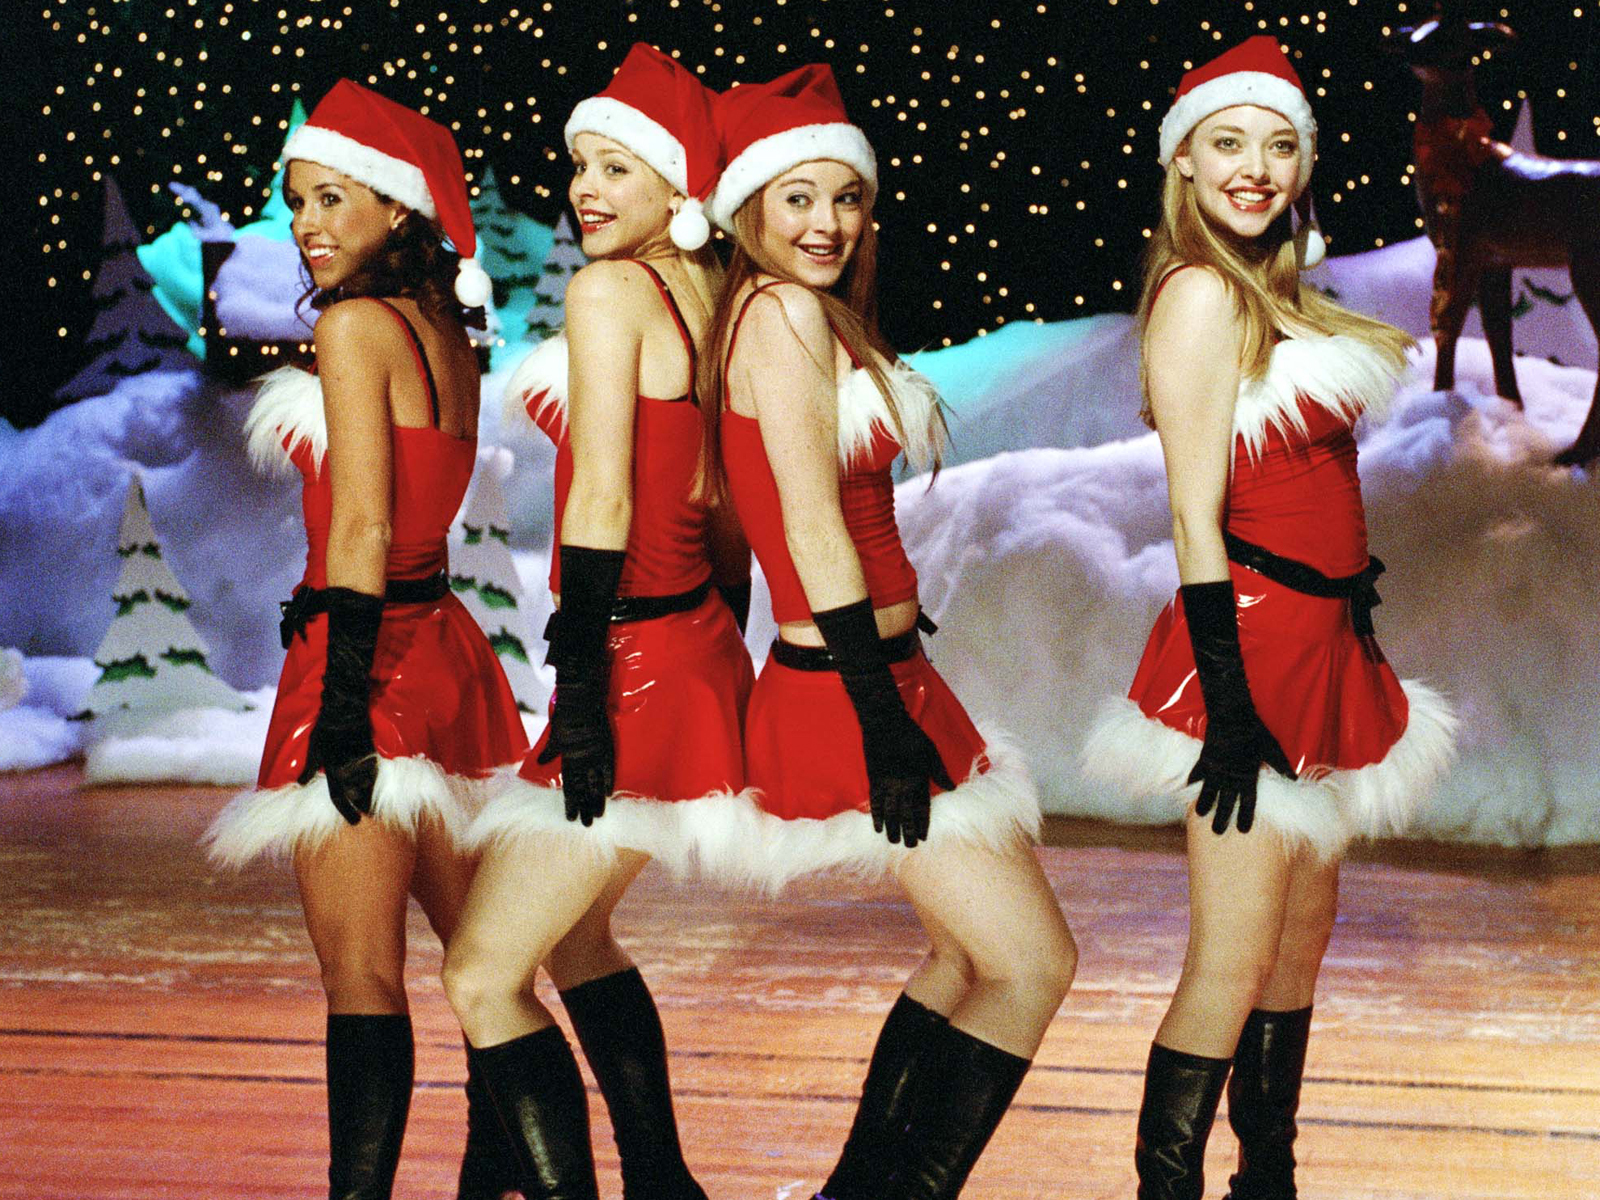 http://static.tumblr.com/iamveri/Ppfmeumsx/mean-girls-22-dec.jpg